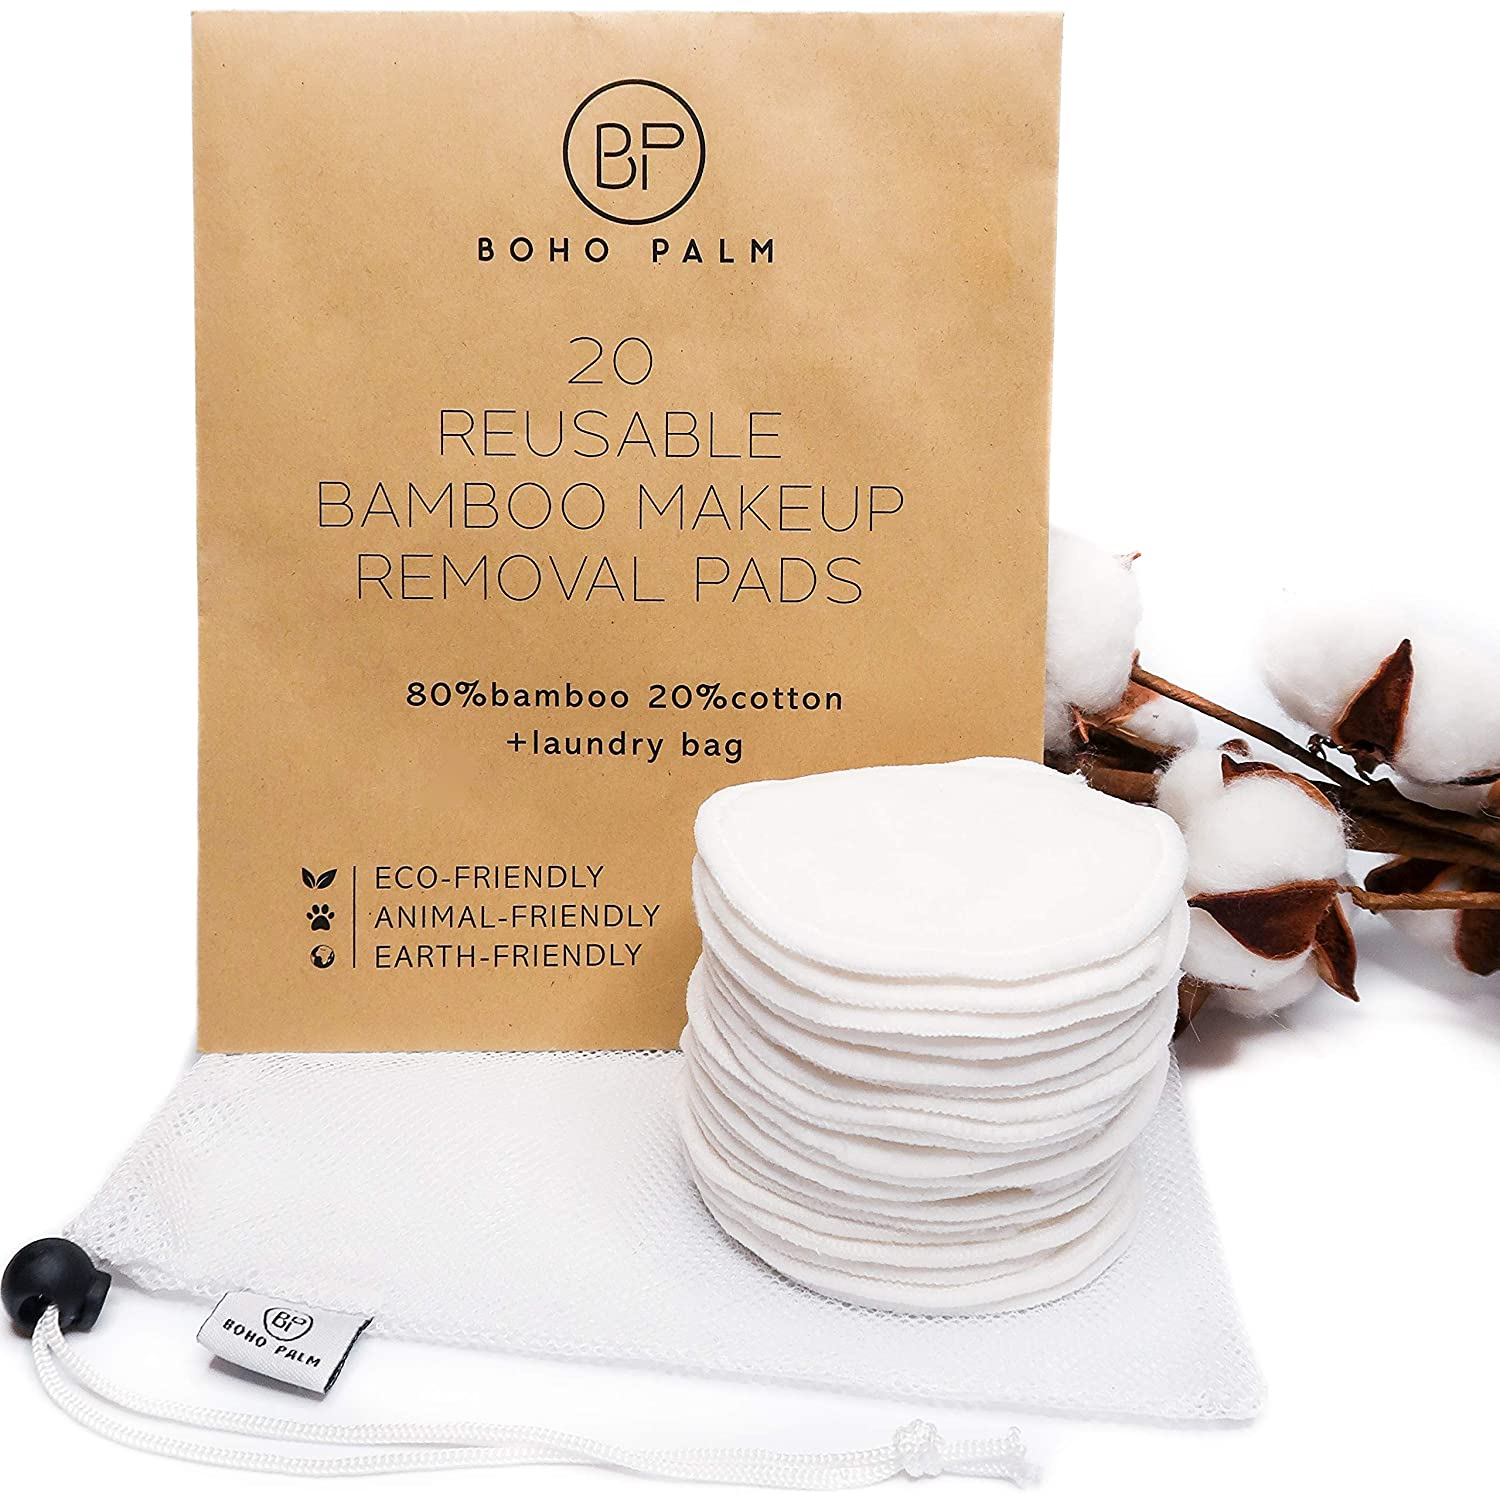 Boho Palm Reusable Eye Makeup Remover Pads - Soft Bamboo Velour Rounds - Organic Natural Cosmetic Face Wipes - Washable Gentle Facial Cleansing and Cleaning Cloths - 20-Pack Microfiber Laundry Bag